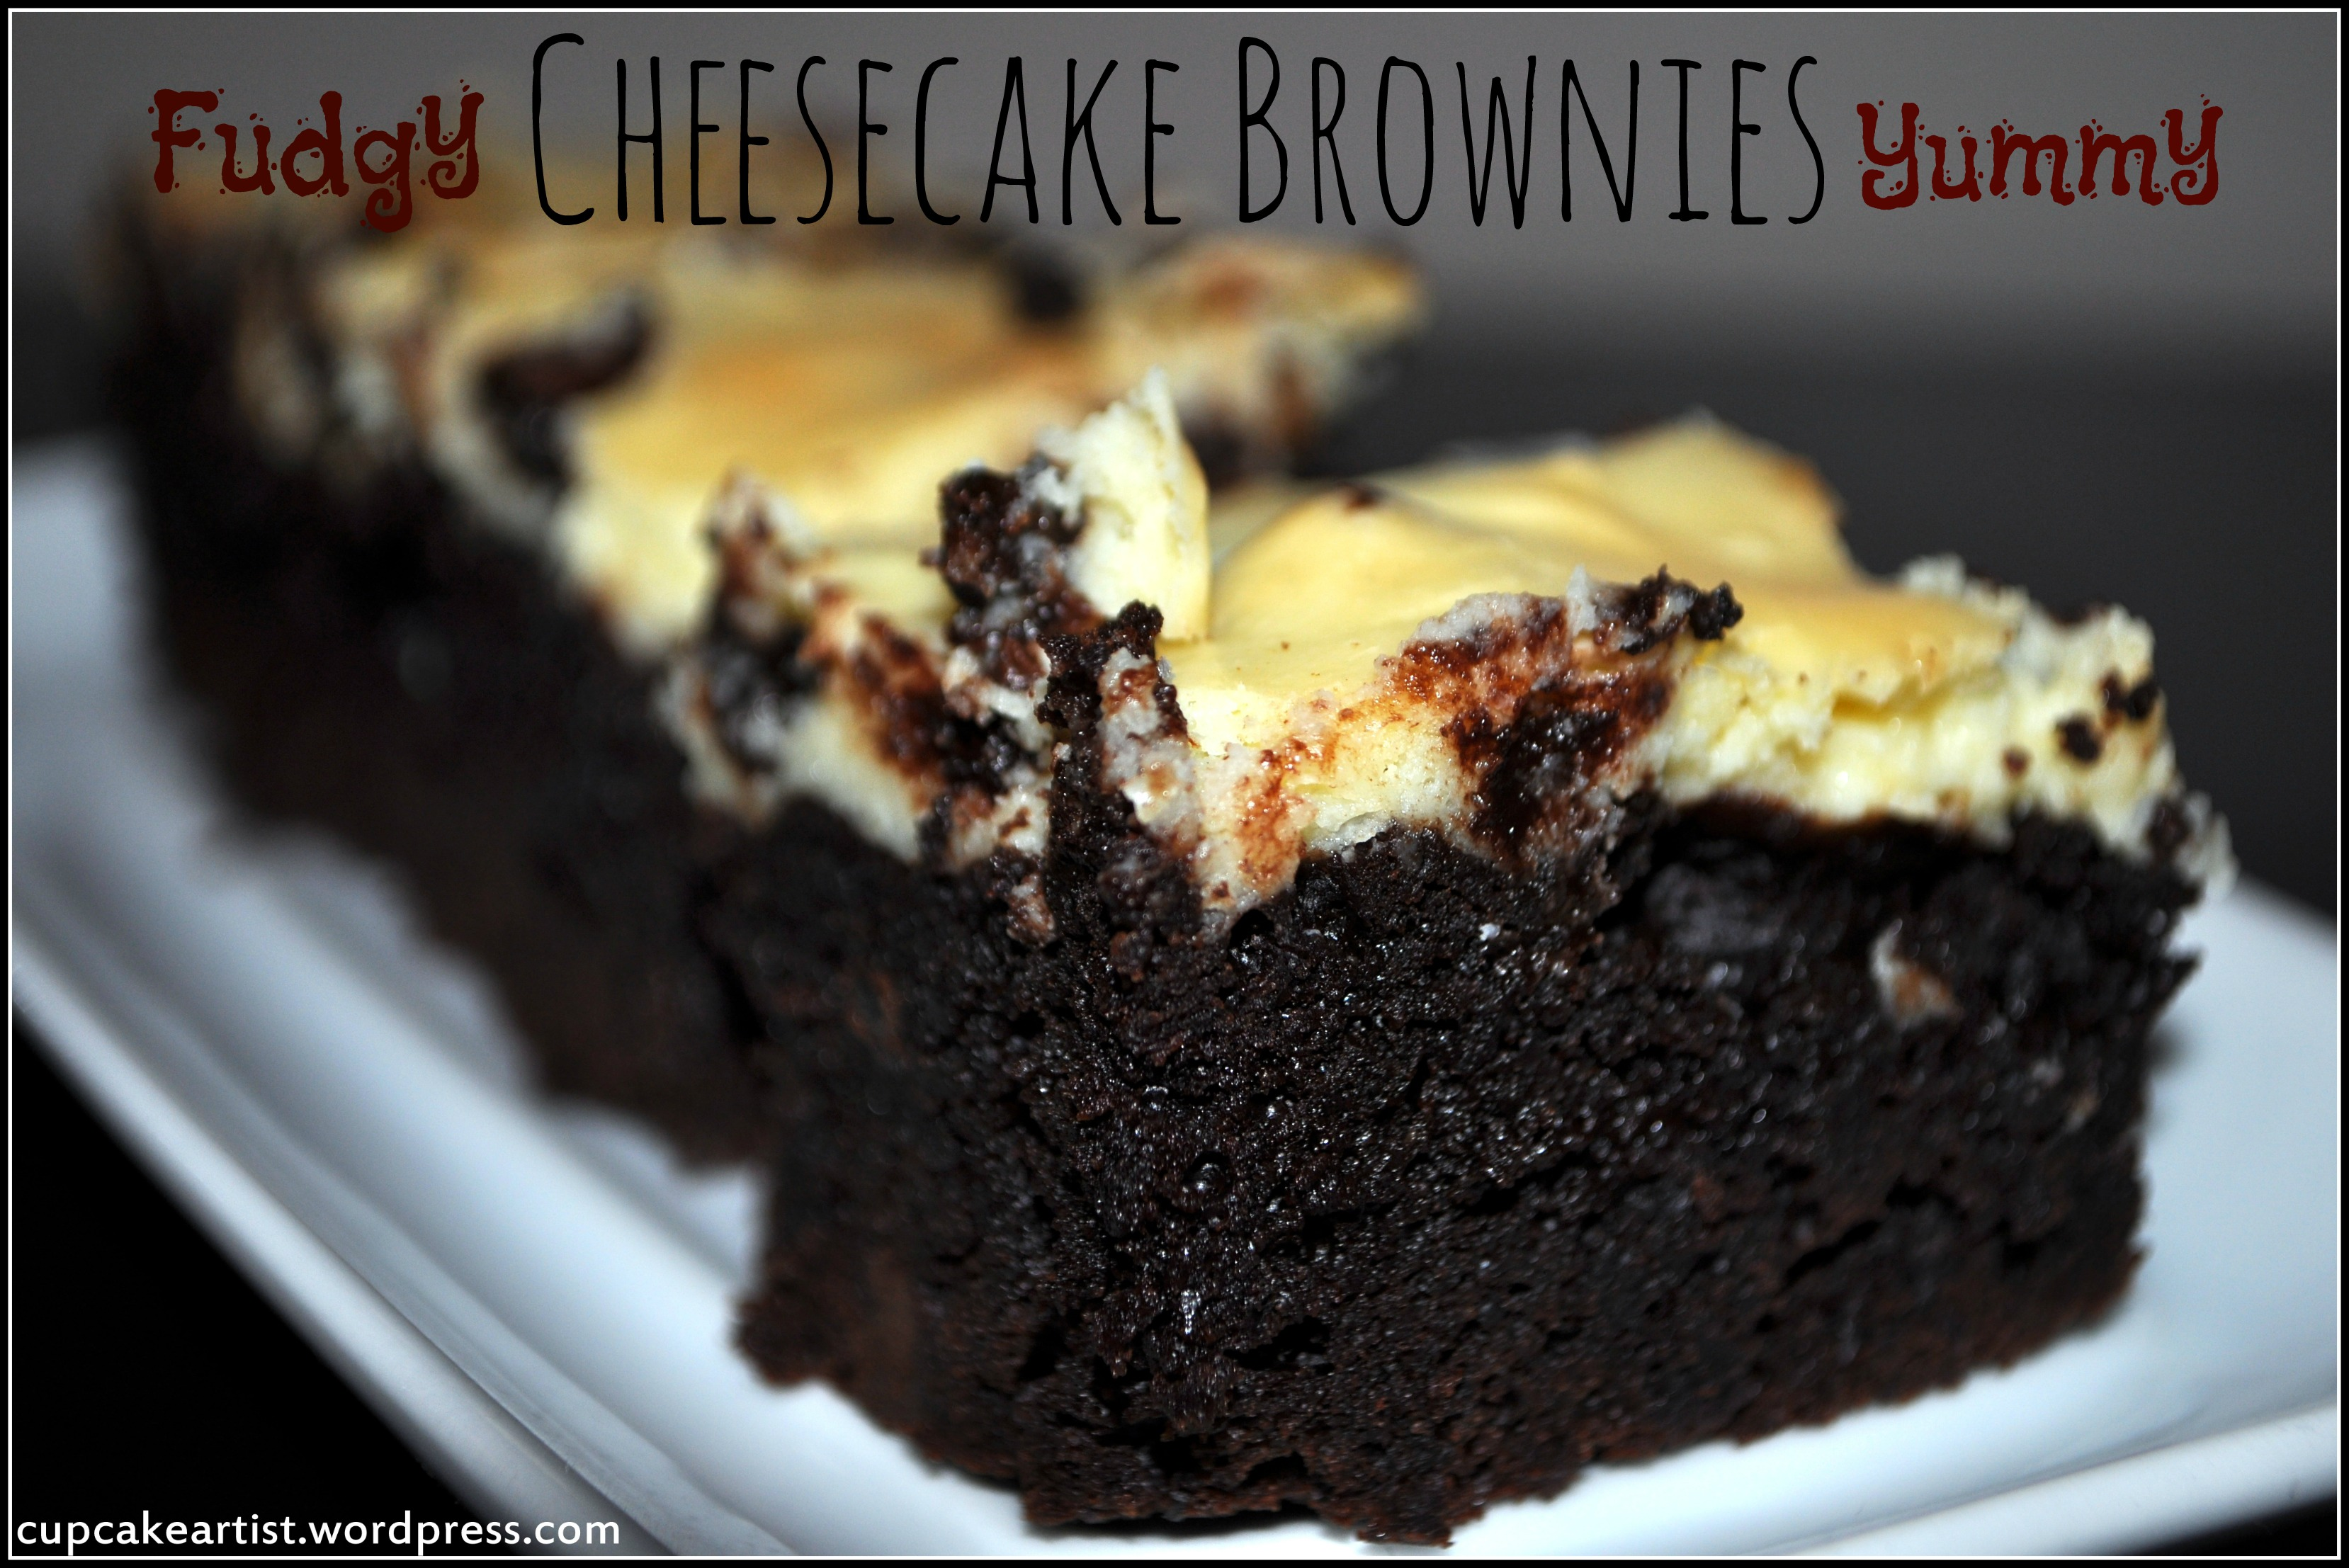 Fudgy Cheesecake Brownies with Chocolate Chips Cupcake Artist